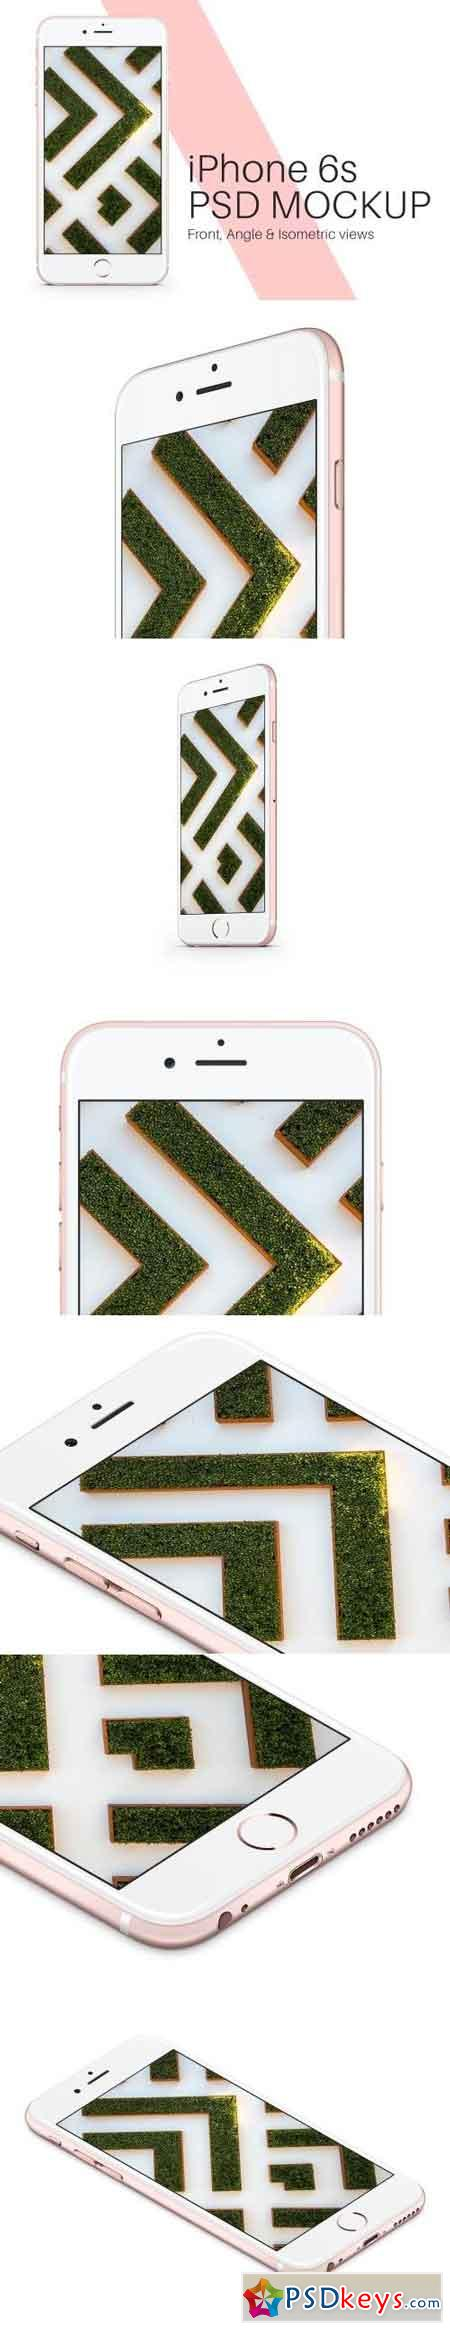 iPhone 6s Rose Gold PSD Mockup